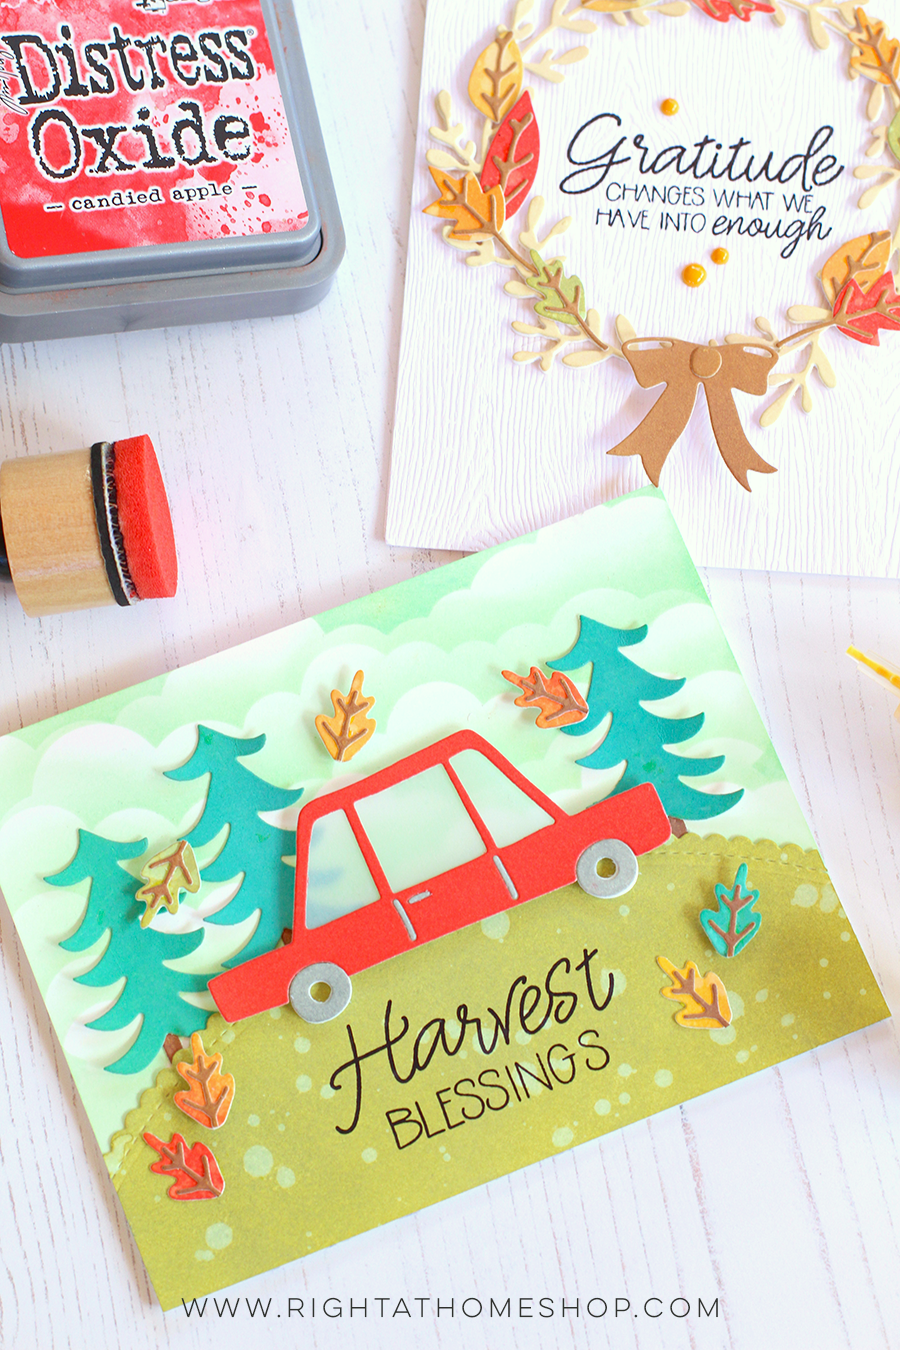 Fall Seasonal Wreath Cards Using Distress Oxide Inks by Nicole // rightathomeshop.com/blog